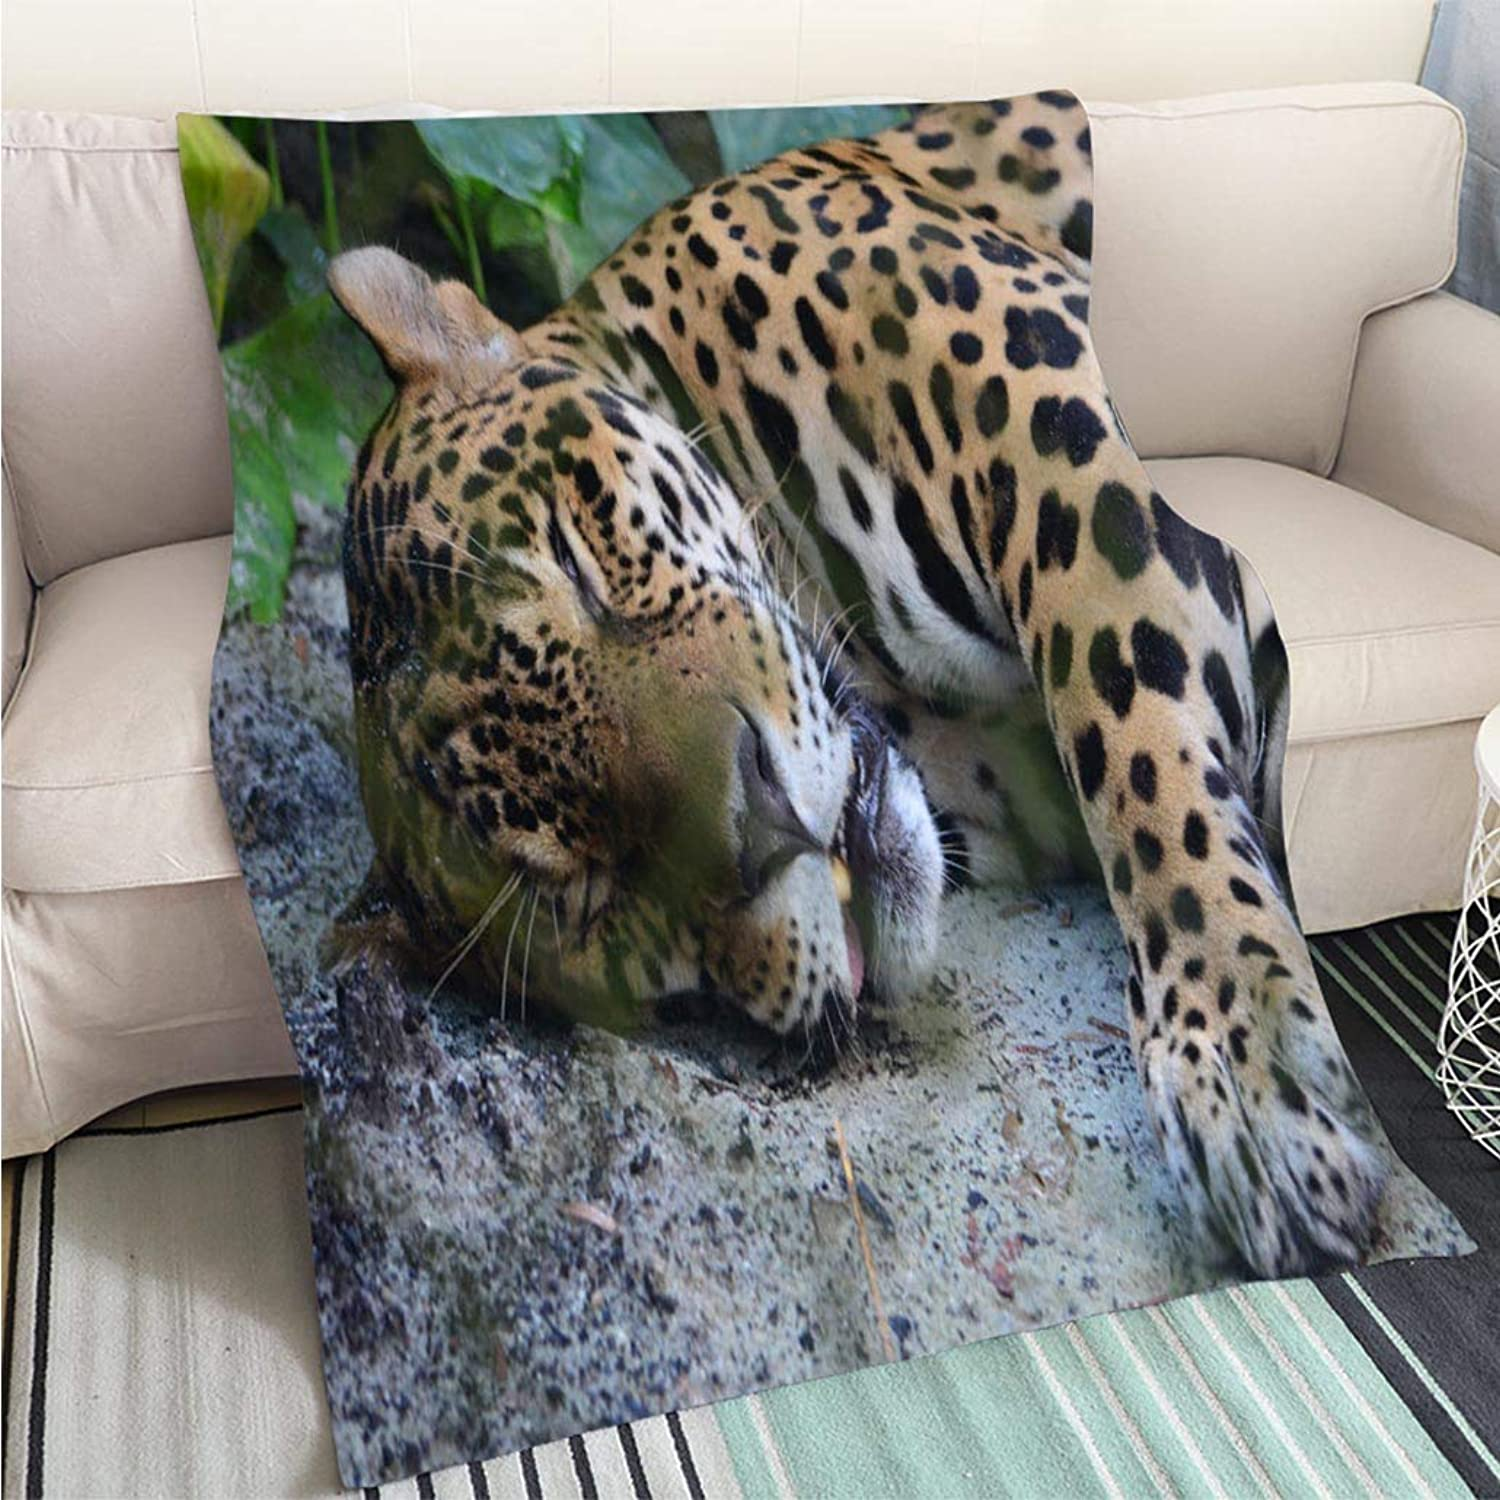 Art Design Photos Cool Quilt A Jaguar in The Amazon rain Forest Iquitos Peru Hypoallergenic Blanket for Bed Couch Chair